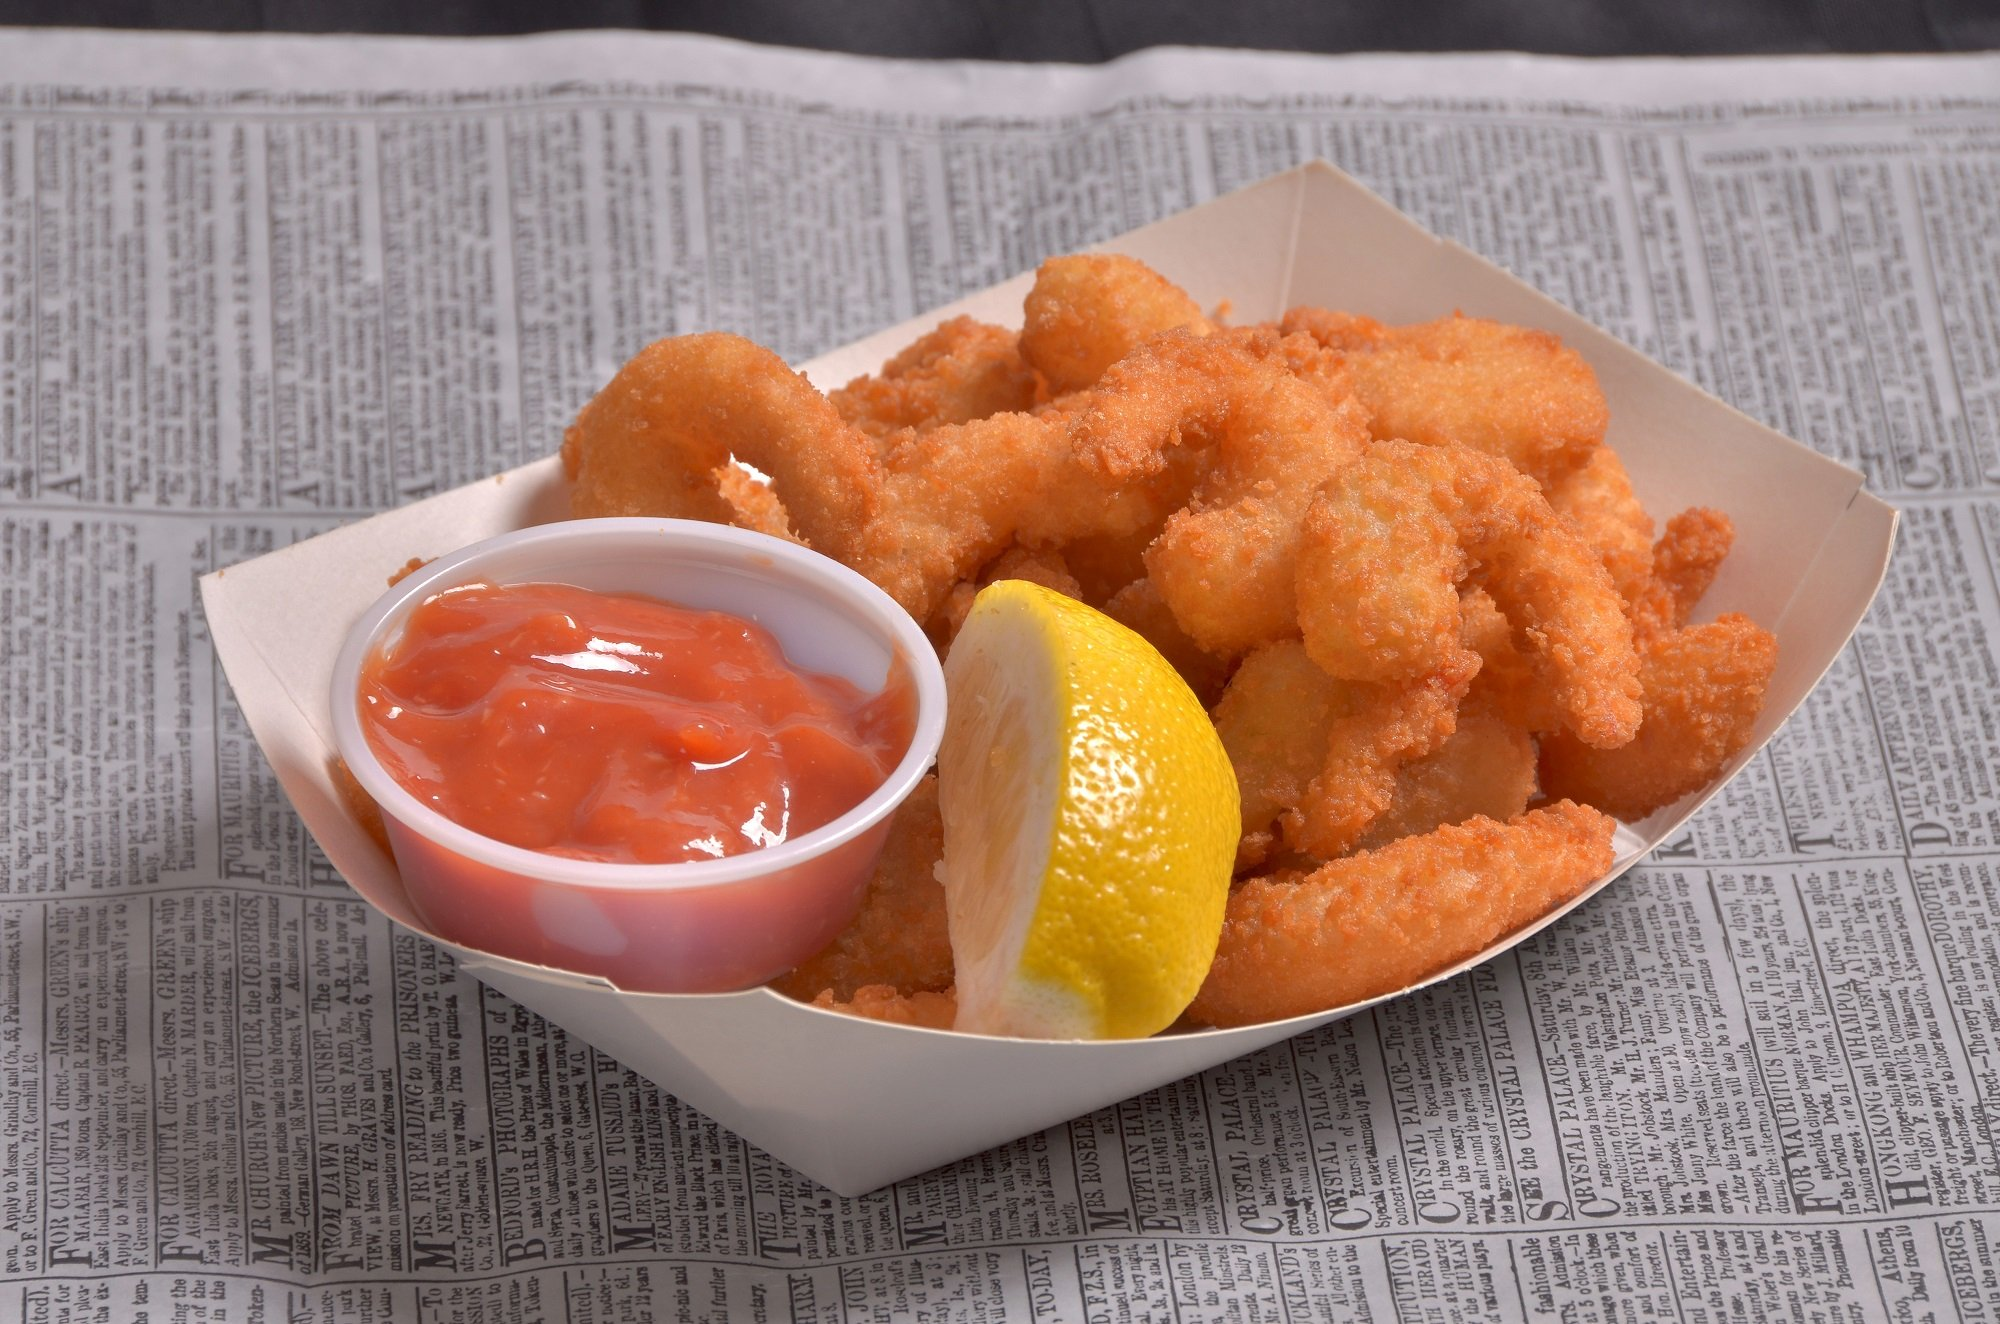 Mrs. Friday's Breaded Shrimp Pouch, 8 oz., (12 count)